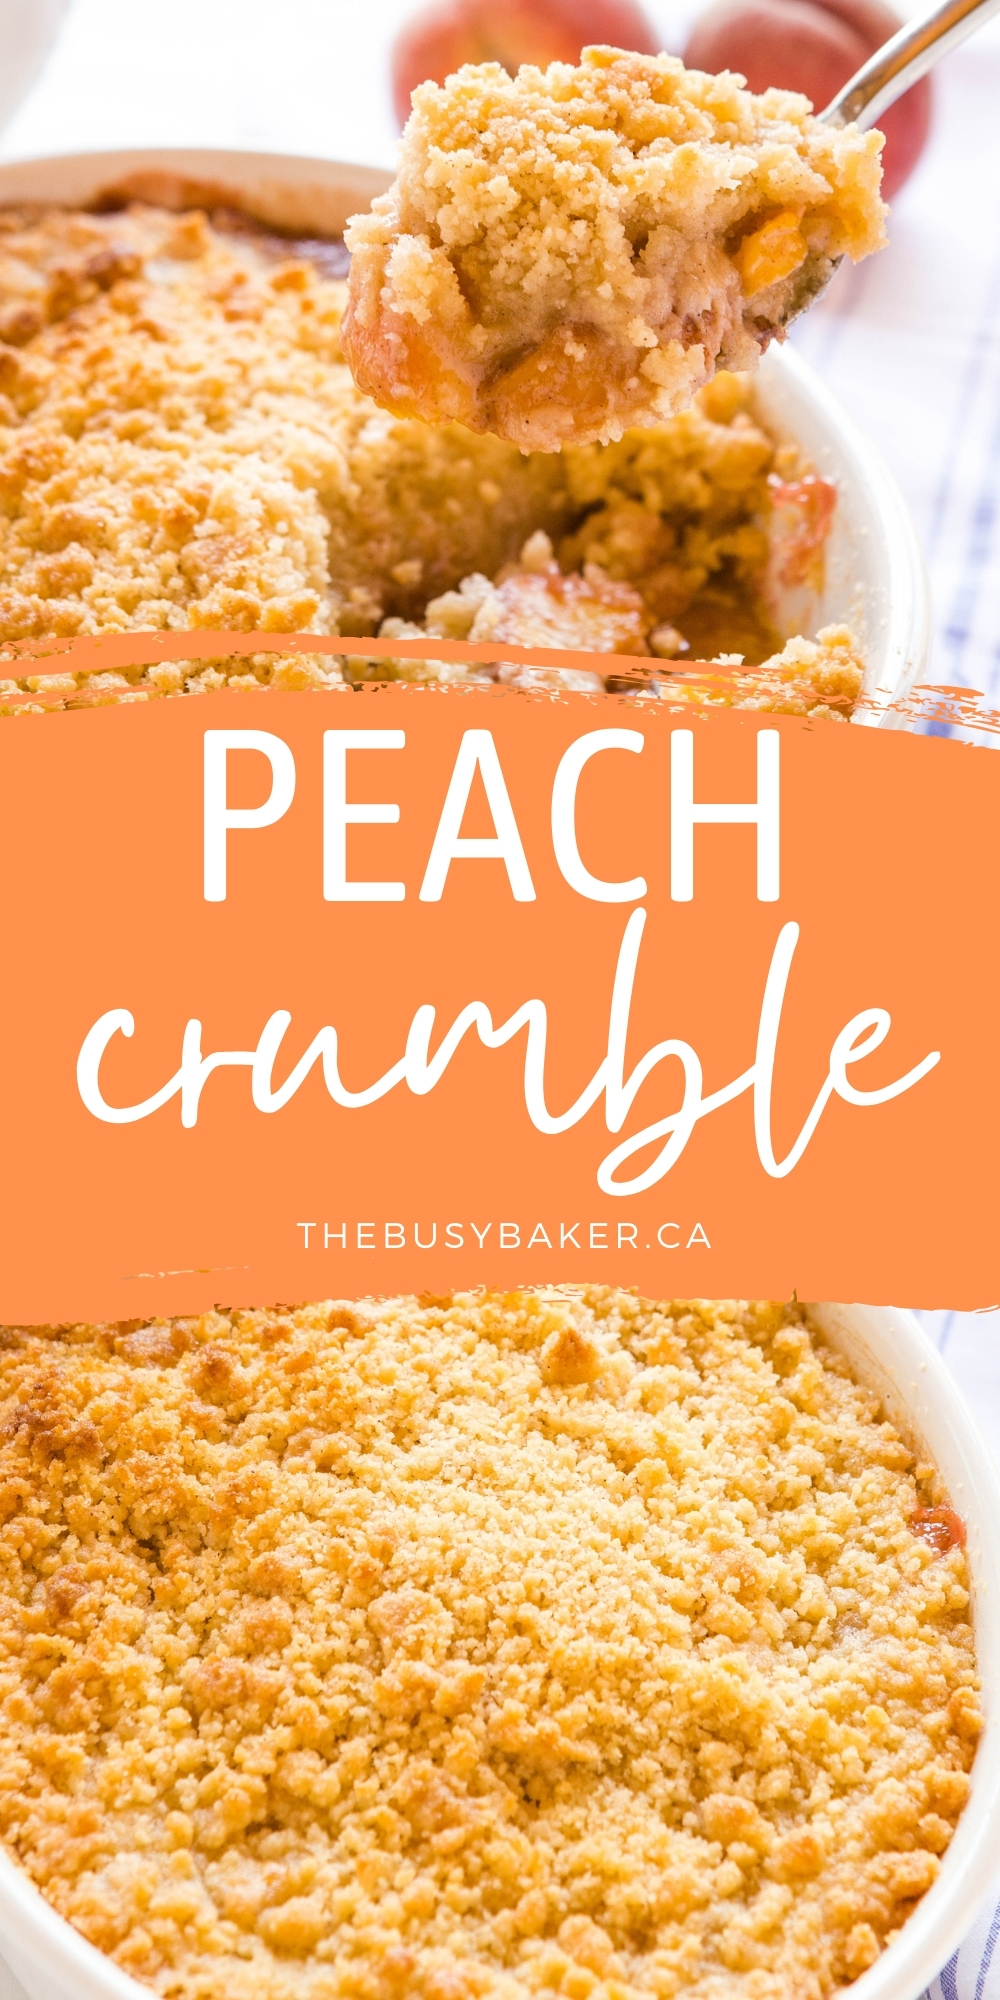 This Fresh Homemade Peach Crumble is the perfect sweet and delicious fruit-packed dessert made with fresh peaches, baked to perfection with the best crumble topping. Recipe from thebusybaker.ca! #peachcrumble #peachdessert #fruitcrisp #fruitcrumble #summer #dessert #baking via @busybakerblog